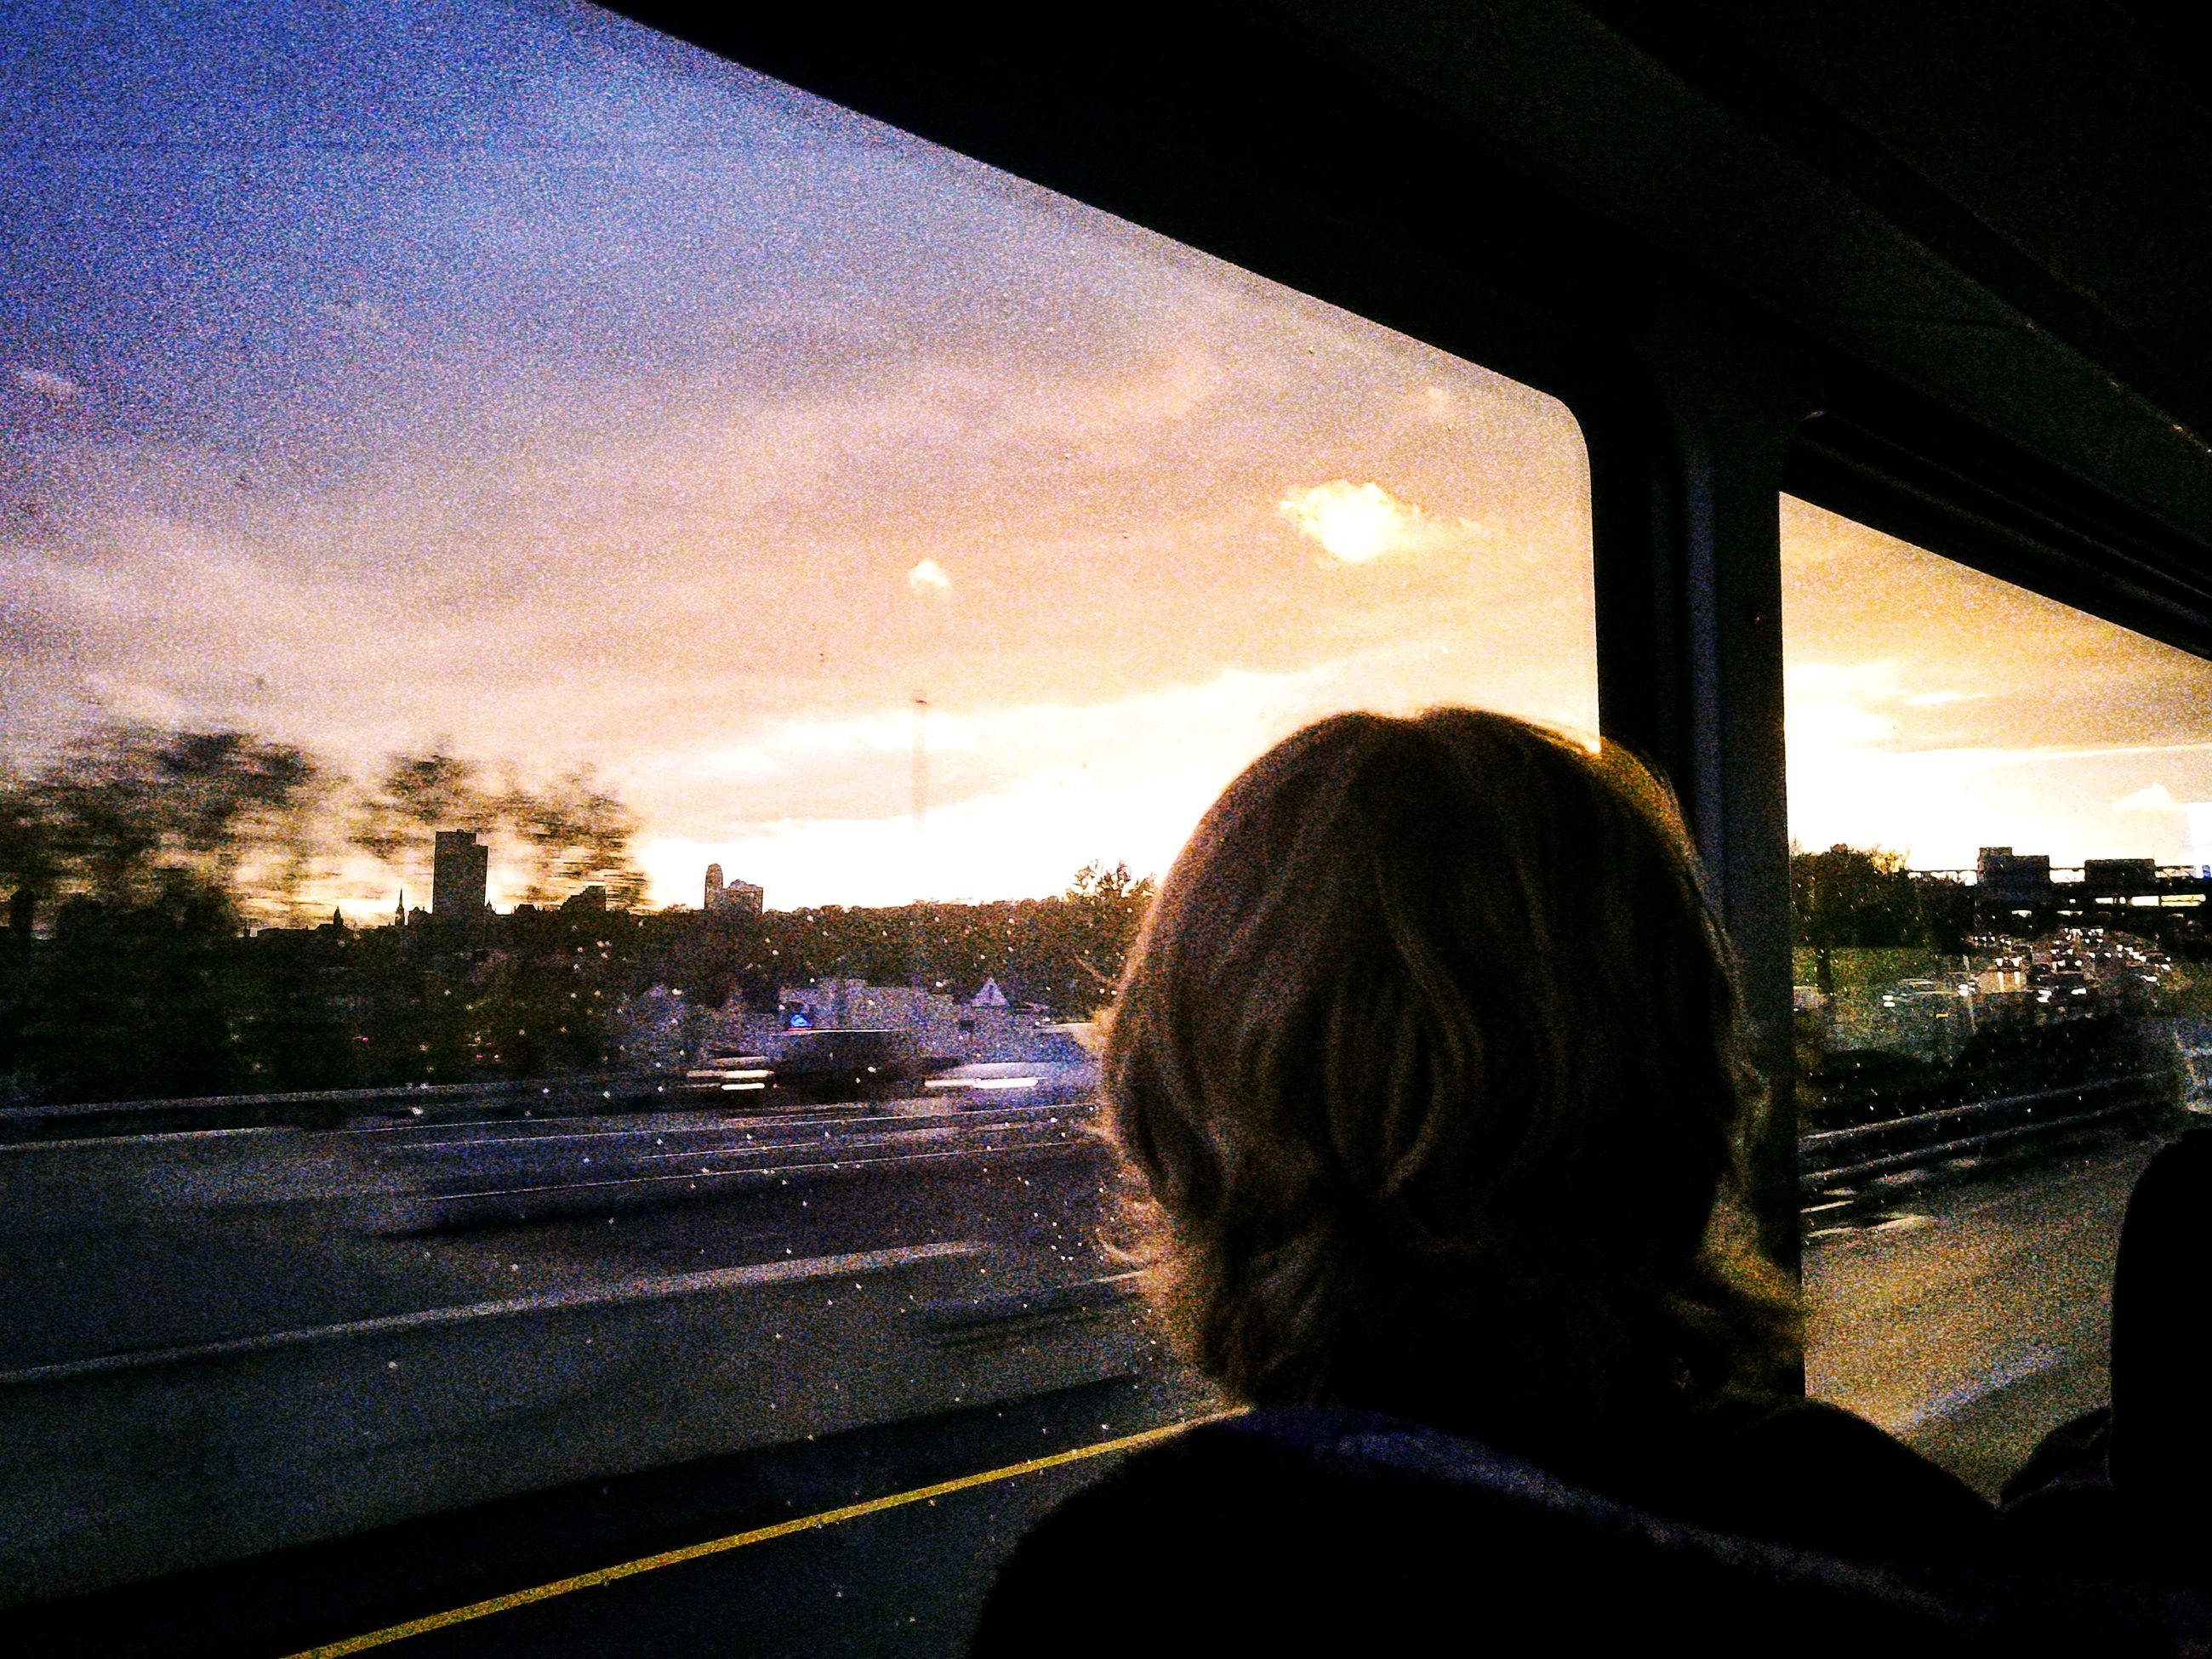 sky, transportation, rear view, headshot, transparent, glass - material, vehicle interior, cloud - sky, car, mode of transportation, one person, road, sunset, motor vehicle, nature, architecture, land vehicle, window, real people, portrait, outdoors